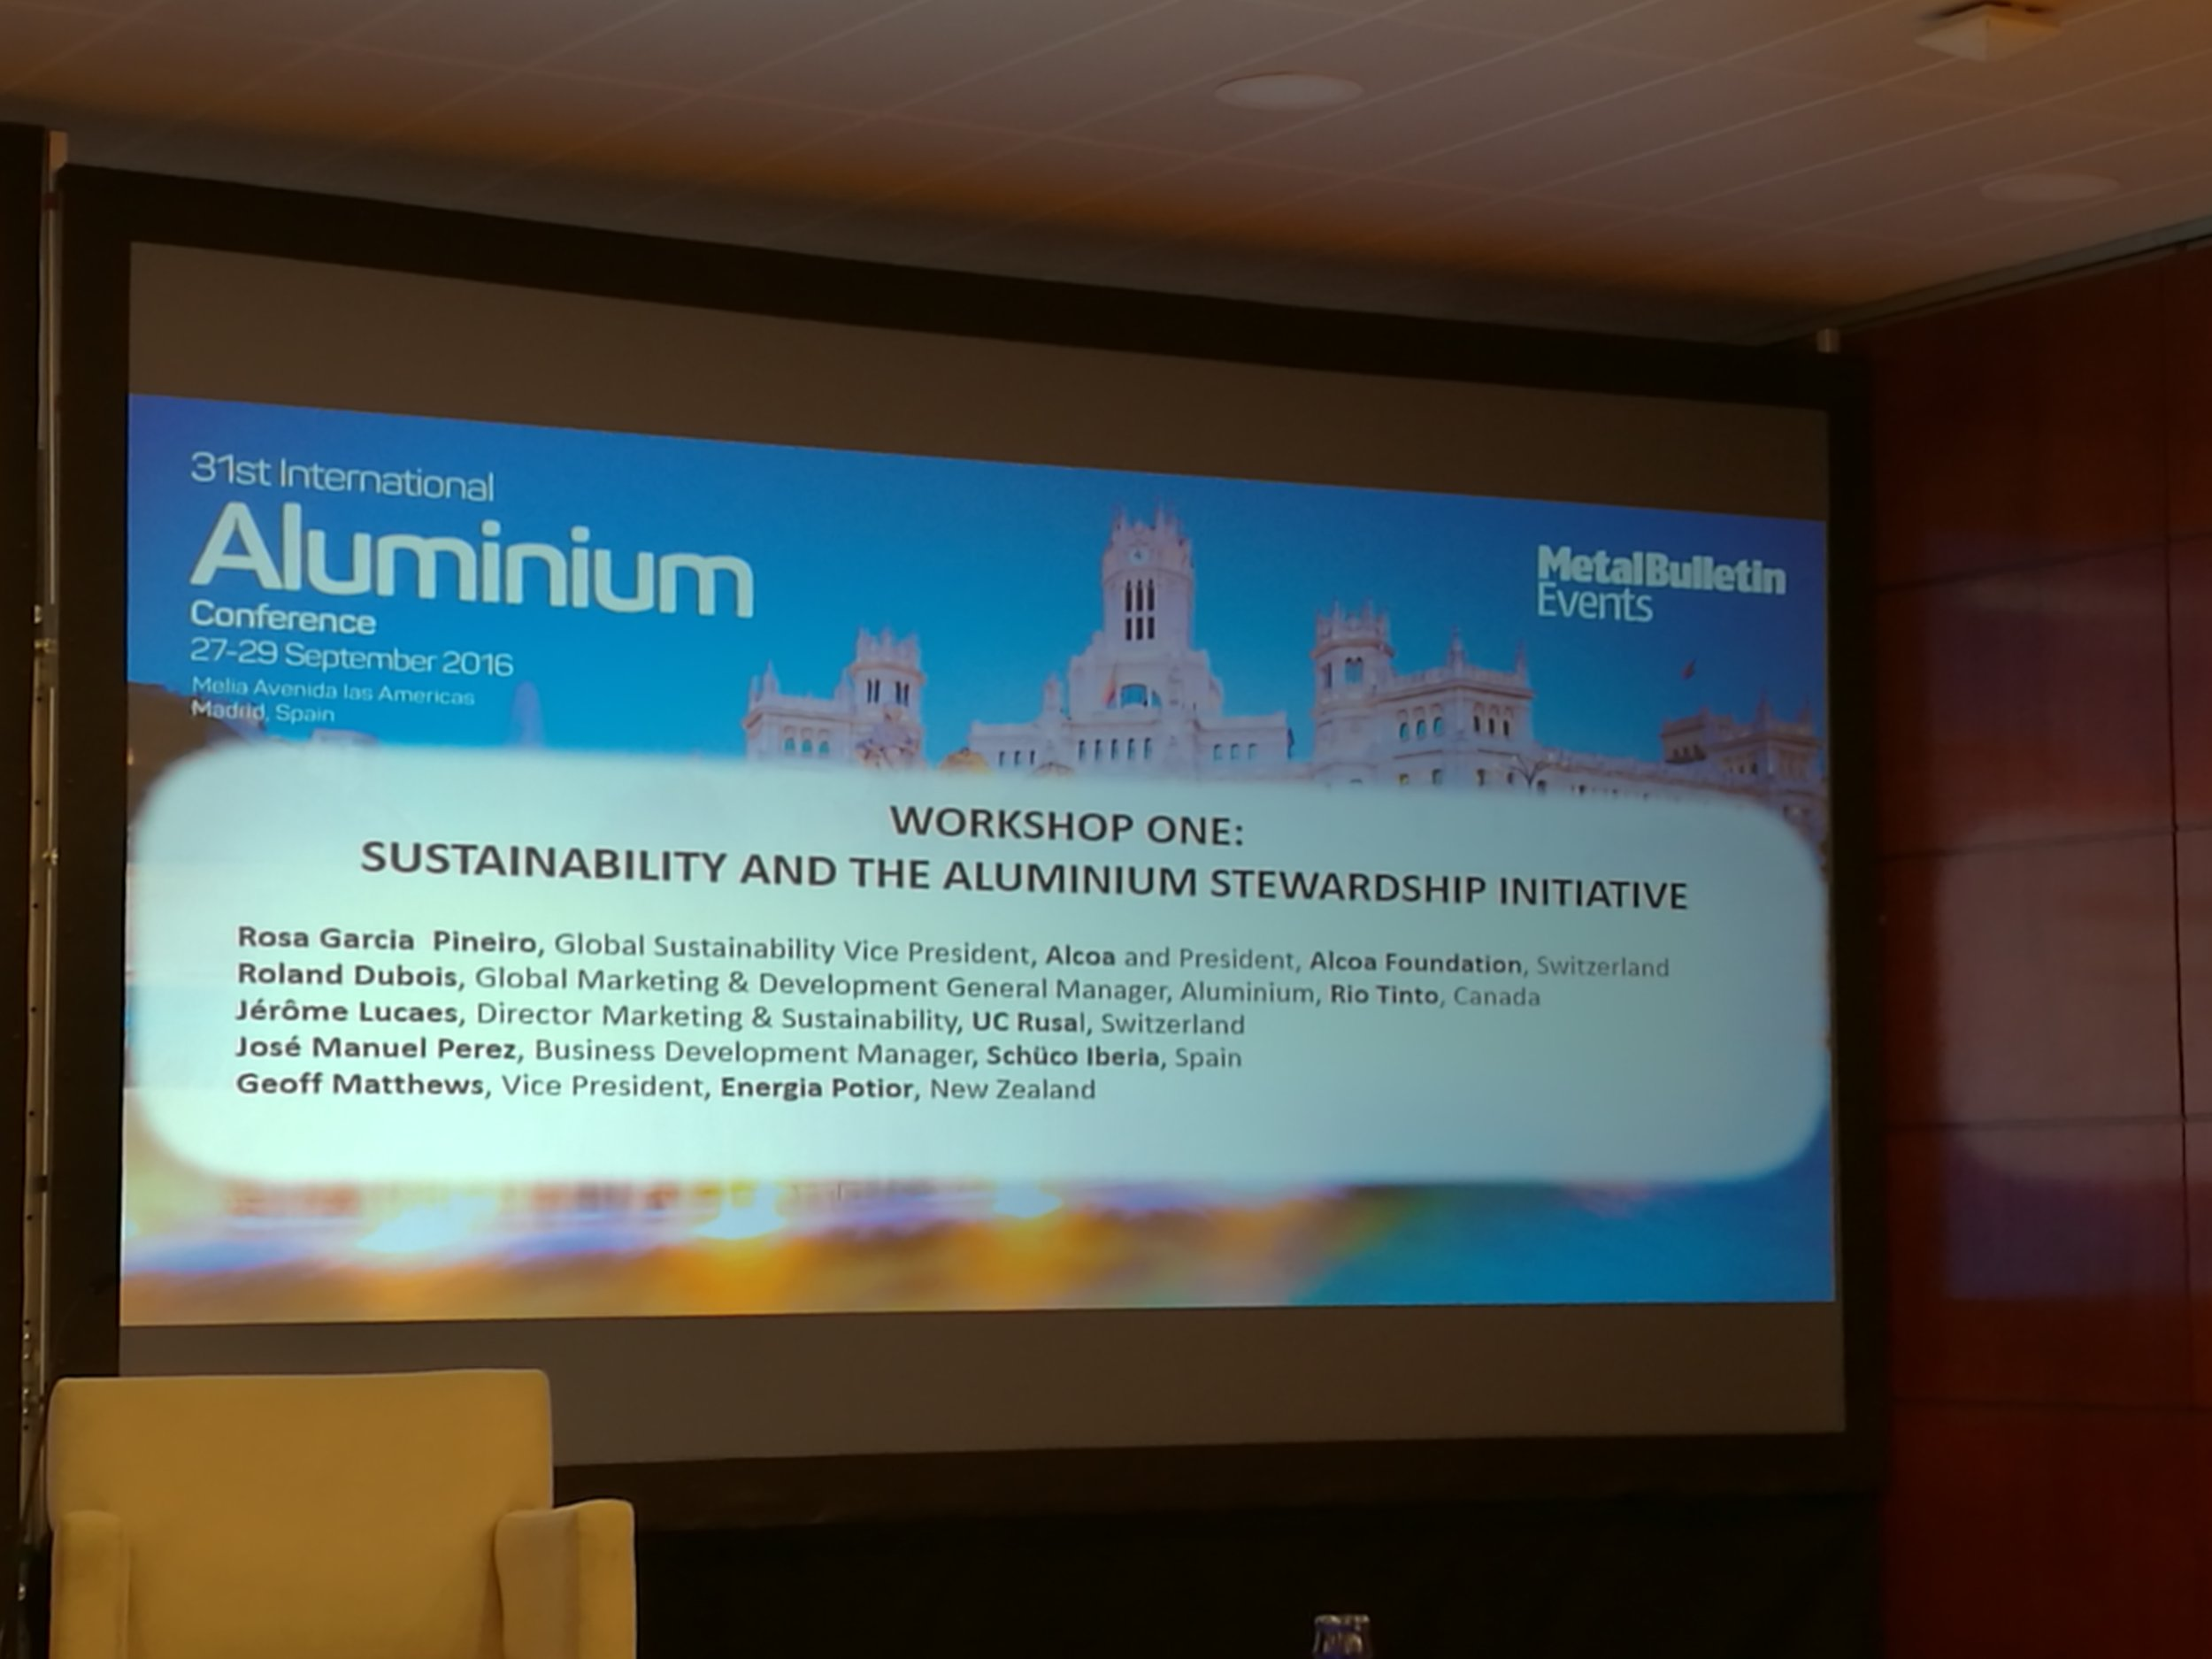 Last week Geoff Matthews, Vice President of Energia Potior, was one of the panel presenters at the ASI workshop at the 31st International Aluminium Conference in Madrid, Spain. Other panelists included representatives from Alcoa, Rio Tinto, UC Rusal and Schuco Iberia.  A copy of Geoff's presentation can be found here: